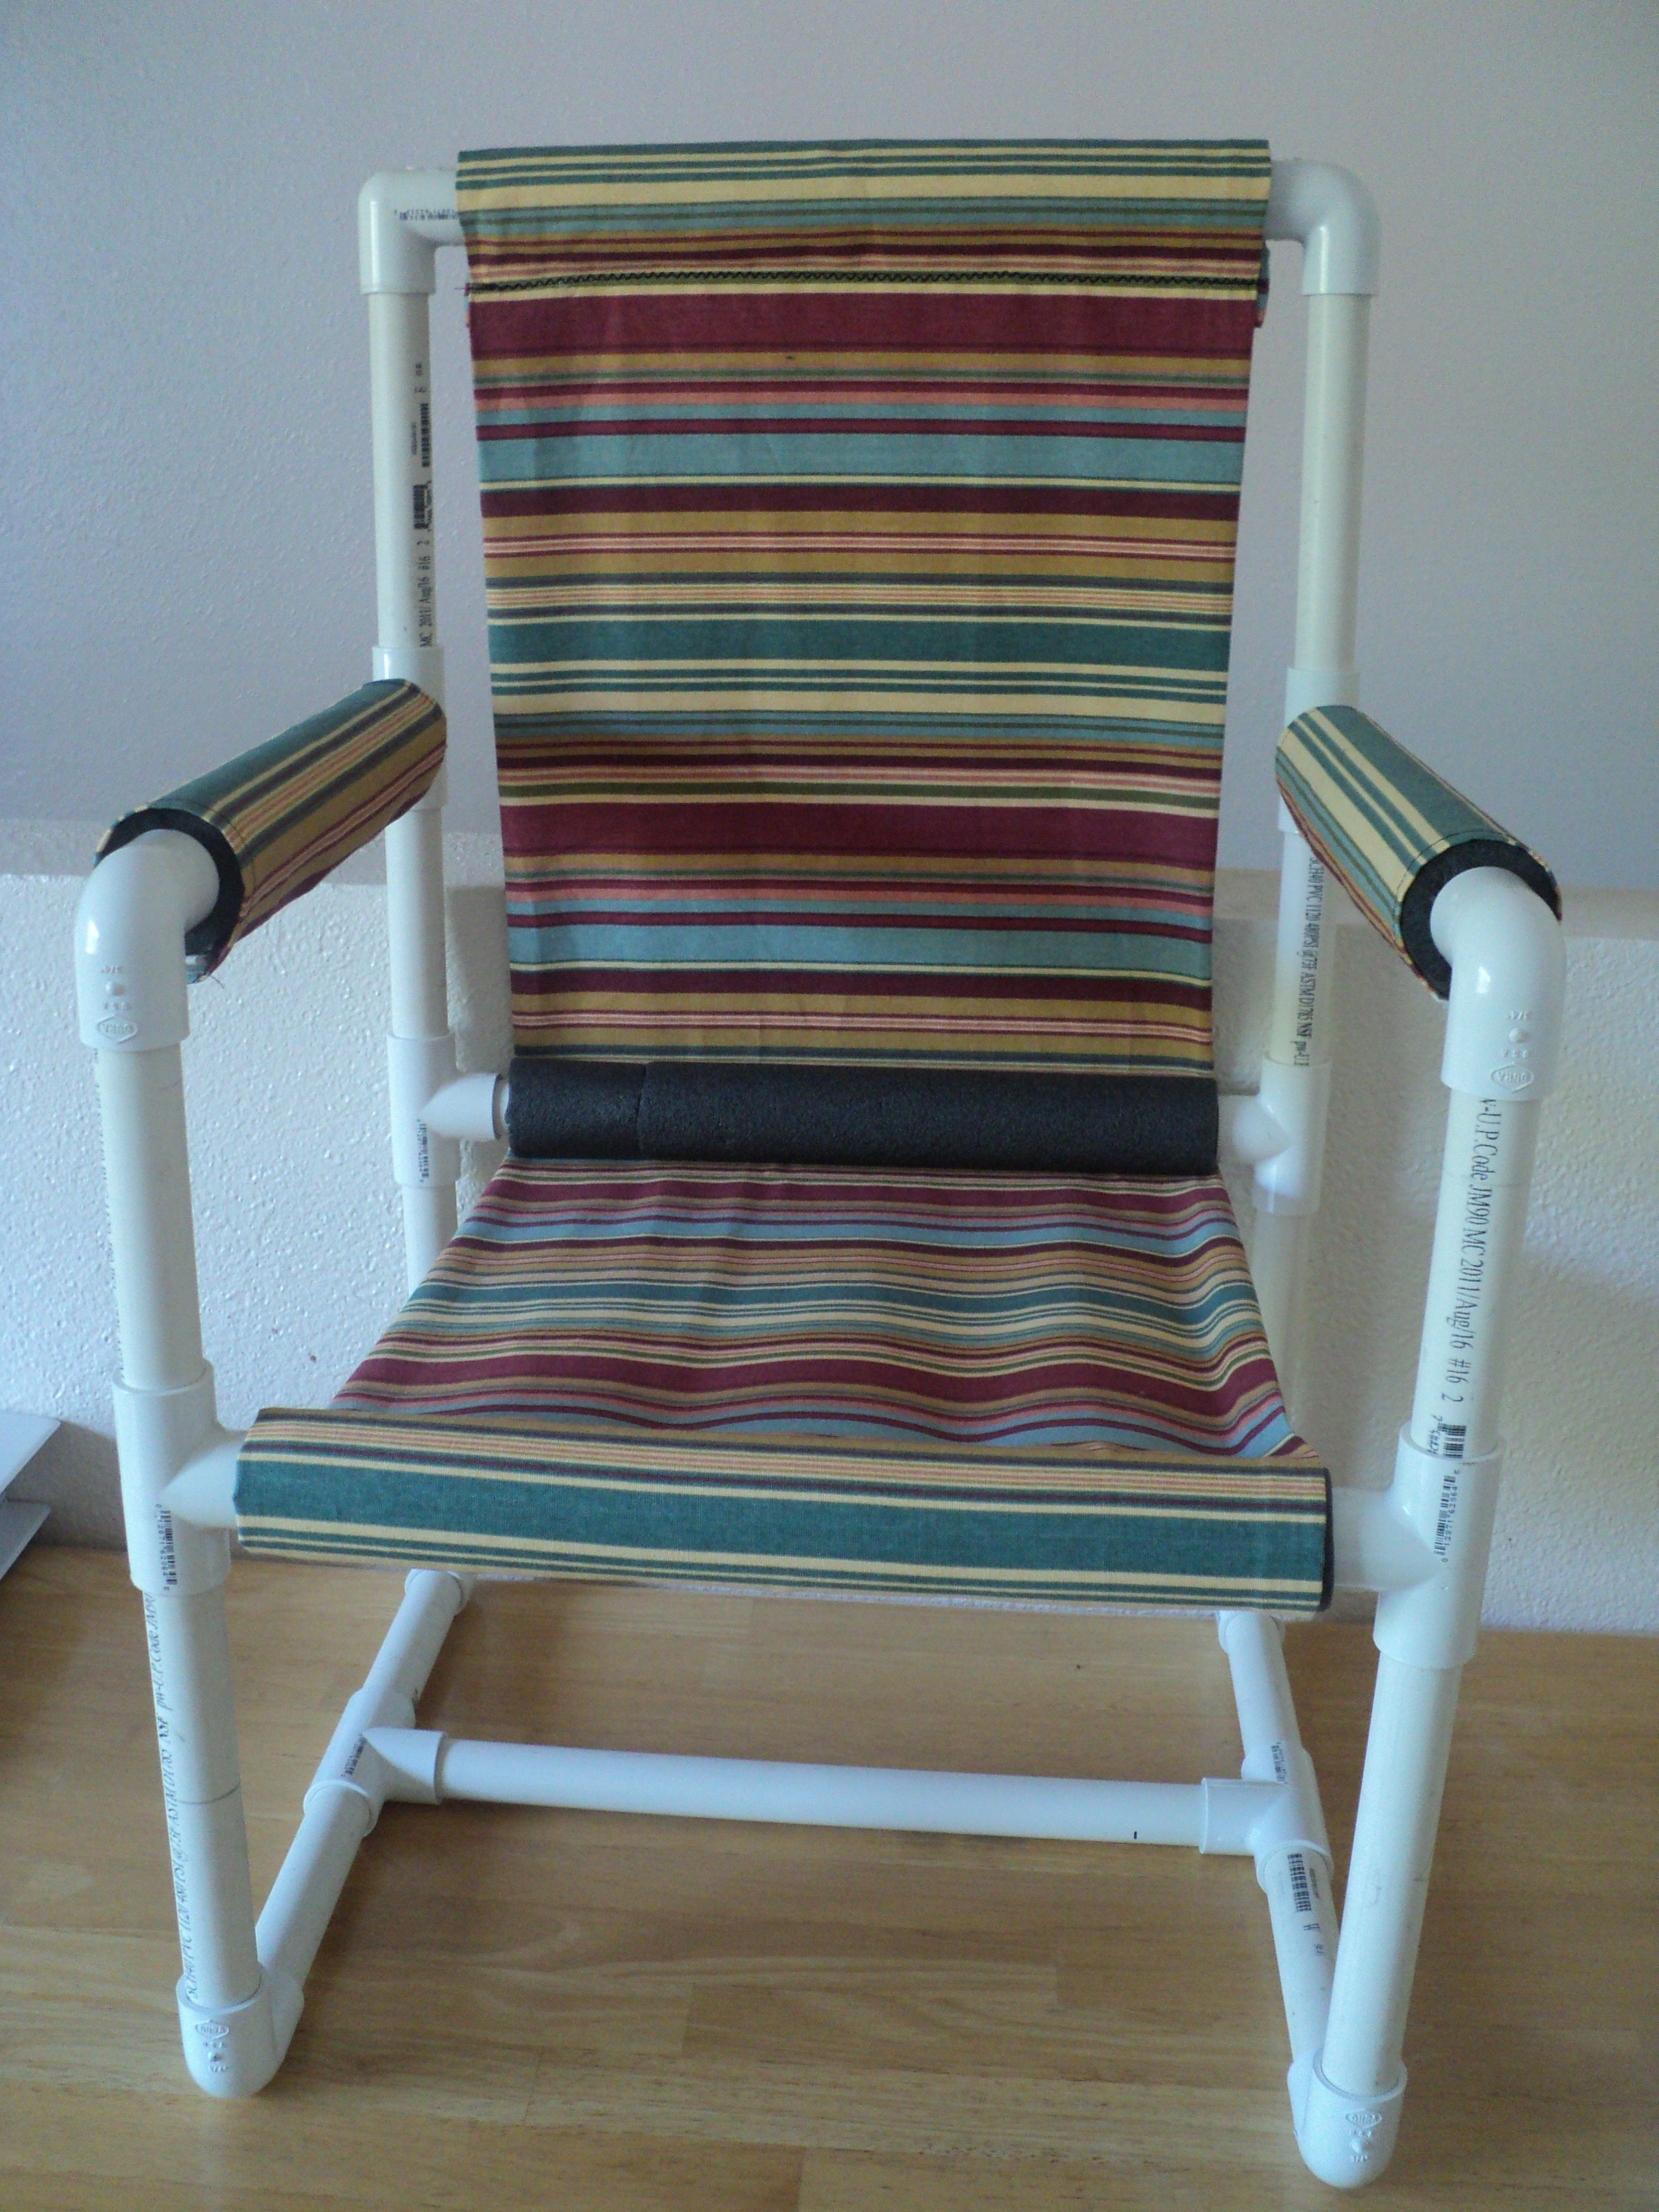 Pvc Pipe Chair Pvc Projects Pinterest